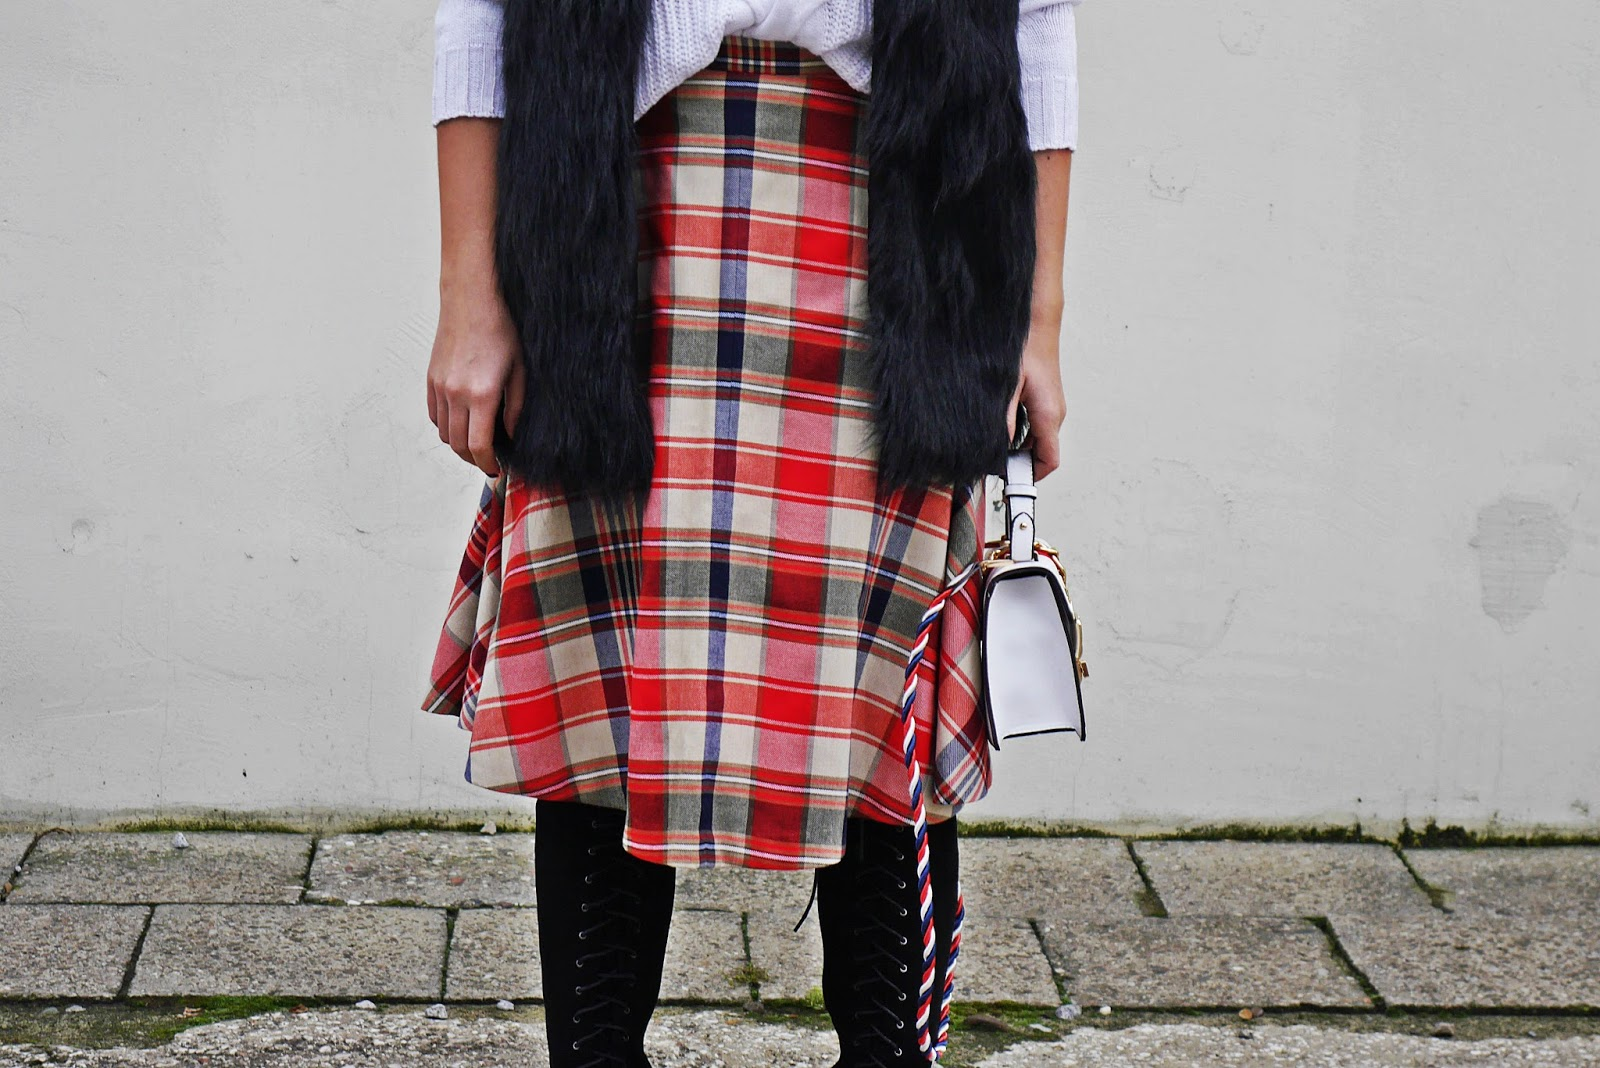 8_plaid_skirt_fur_waist_white_sweater_high_kenee_shoes_karyn_blog_modowy_151117